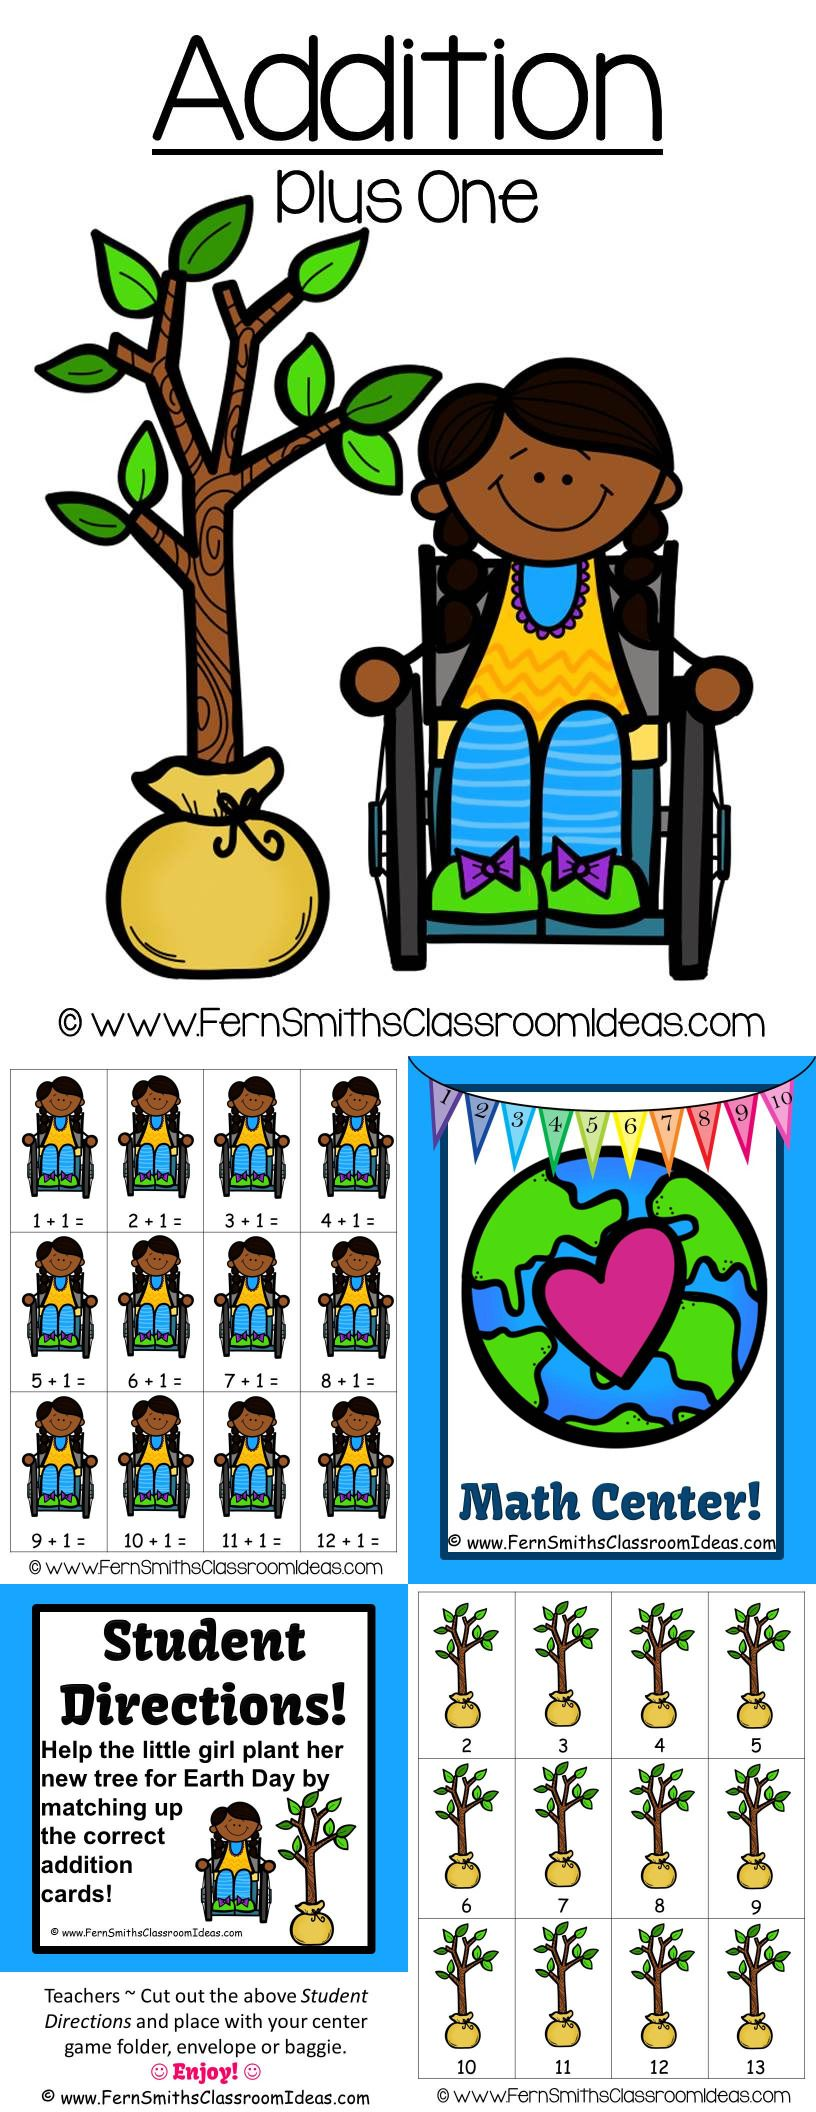 Quick And Easy To Make Plus Zero In Addition Center Game For Earth Day Add A Little Social Studies And Science Center Game Fern Smith S Classroom Ideas Math [ 2112 x 816 Pixel ]